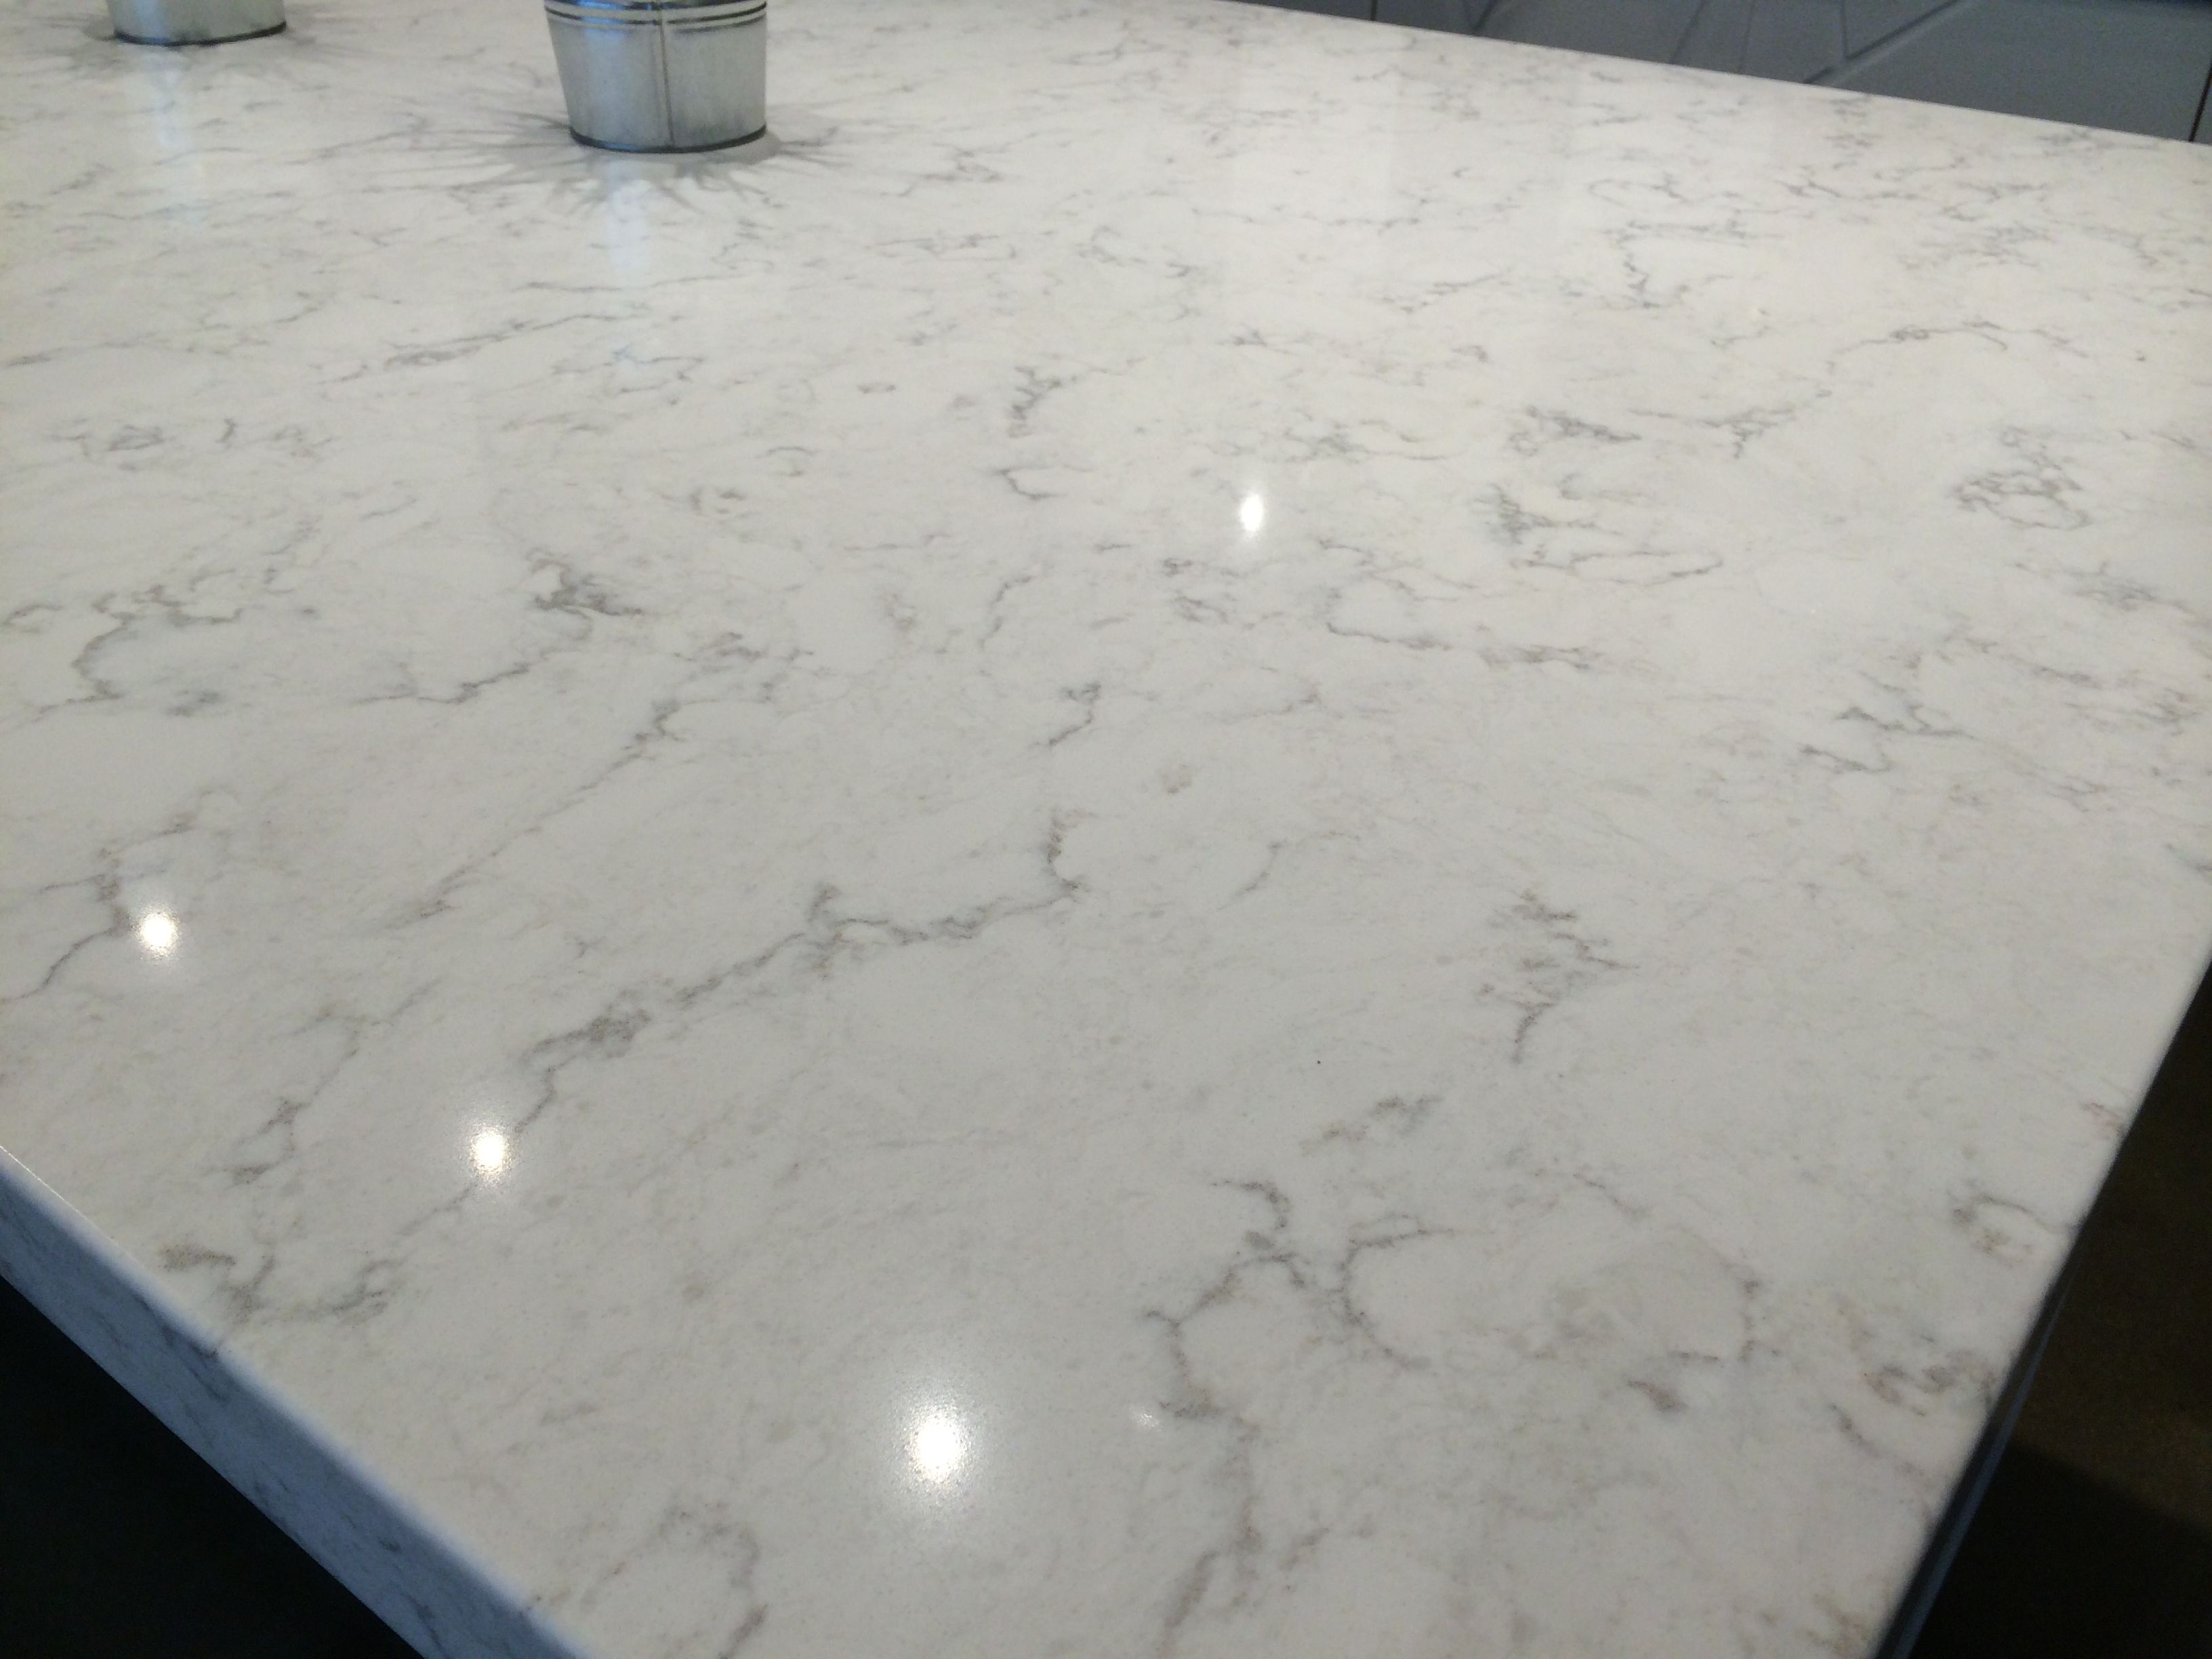 best 20 quartz countertops prices ideas on pinterest kitchen mike is unsure about how natural this quartz looks but i like it do you know what price range this quartz falls into we saw it at avanti stone